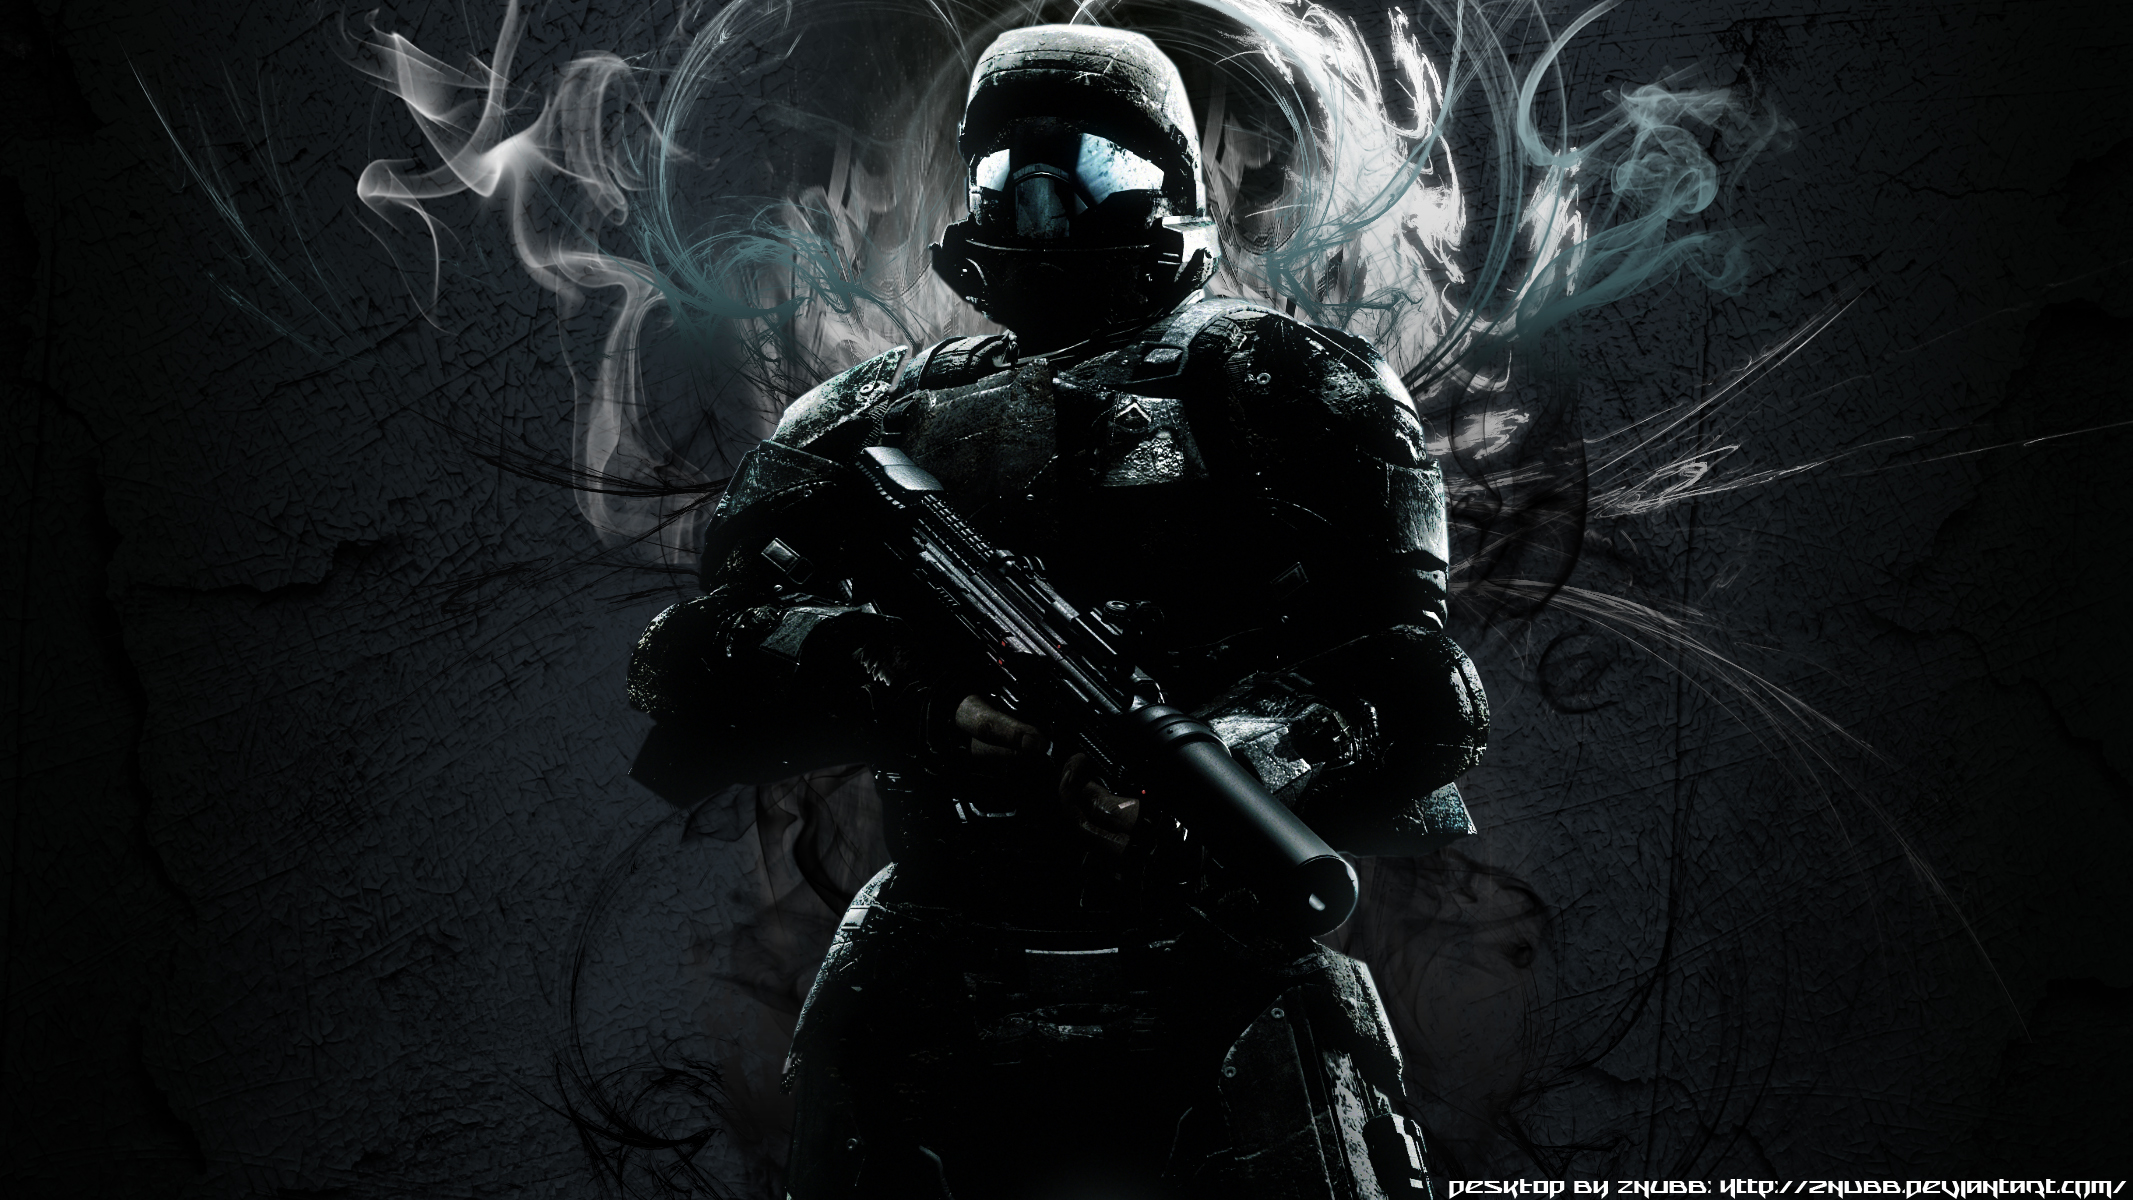 Free Download Halo 3 Odst Wallpaper By Znubb 2133x1200 For Your